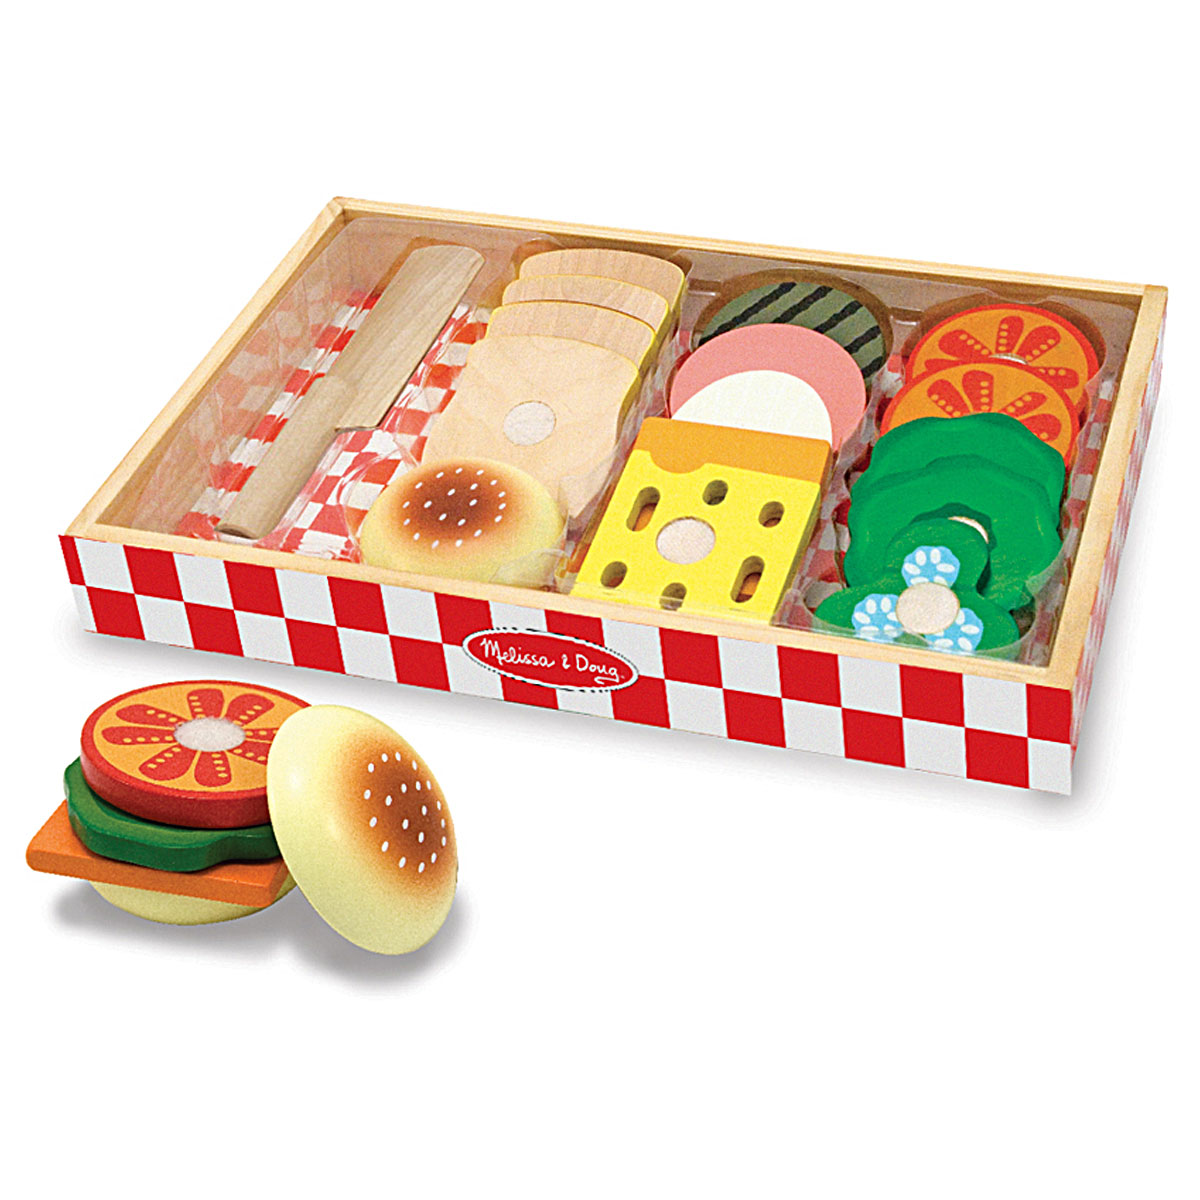 All New Melissa And Doug Wooden Kitchen Accessory Set 12610 Toys Games Pre School Games